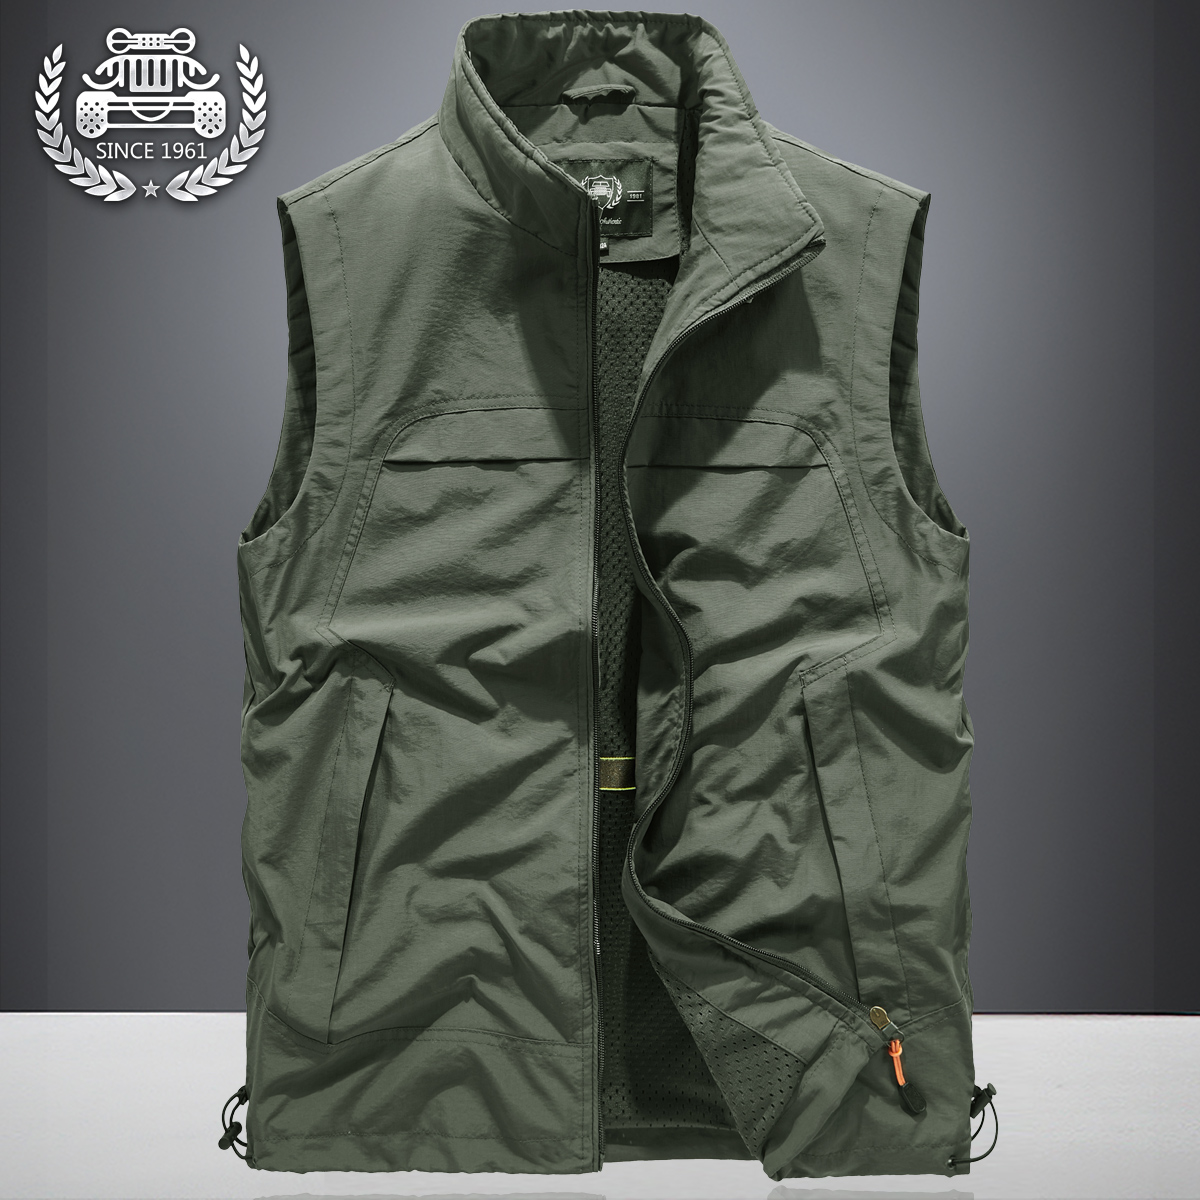 Spring 2020 vest men's thin plus size loose Vest Jacket spring and autumn outdoor mountaineering shoulder coat